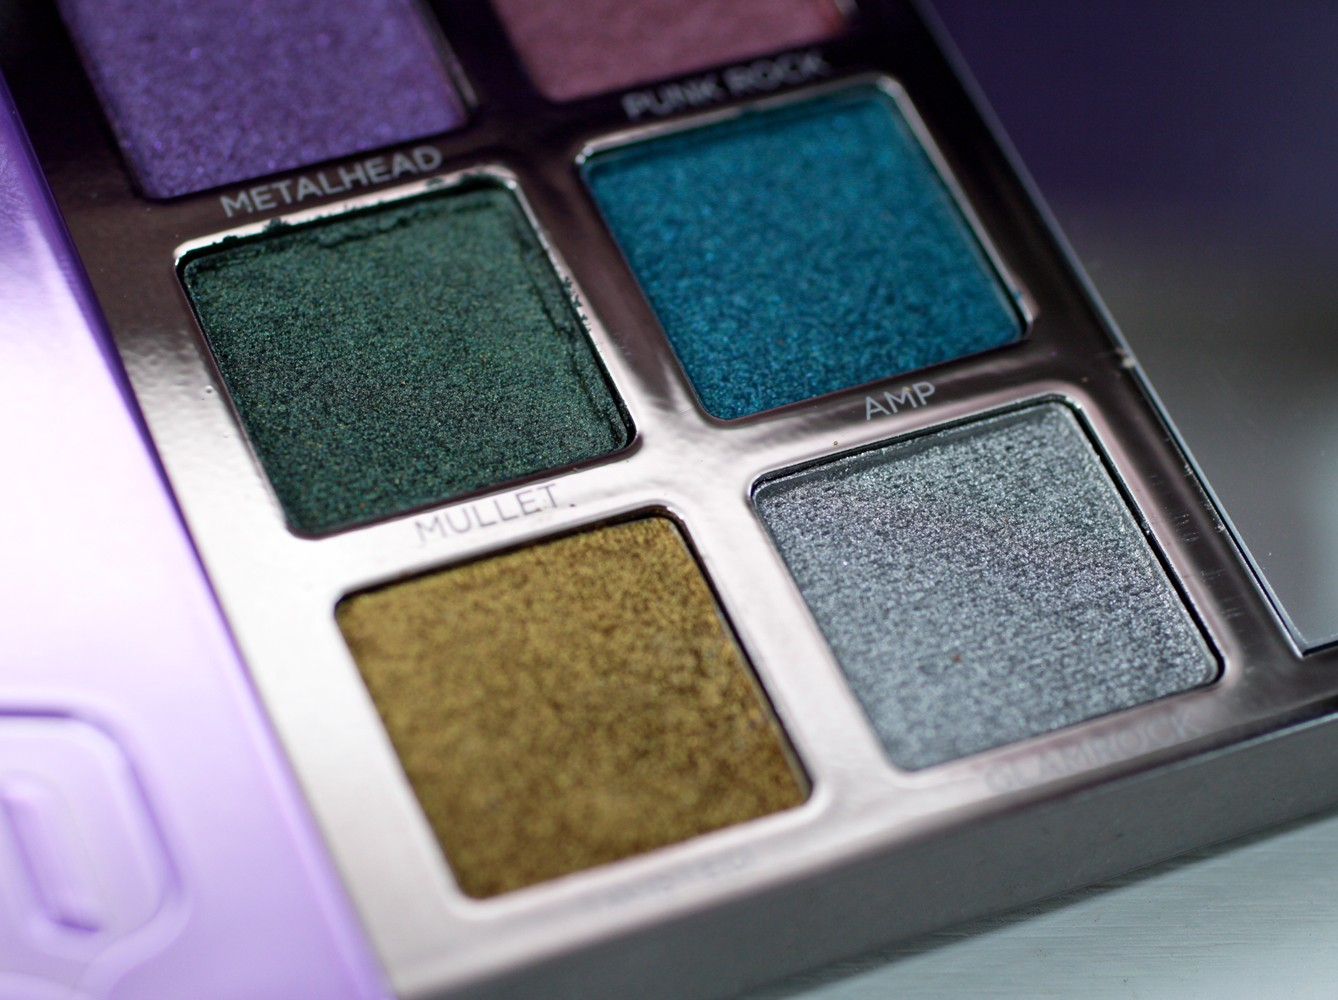 Urban Decay Heavy Metals Eyeshadow Palette - Mullet, Amp, Twisted, Glamrock - Urban Decay Heavy Metals Palette review by popular Los Angeles cruelty free beauty blogger My Beauty Bunny